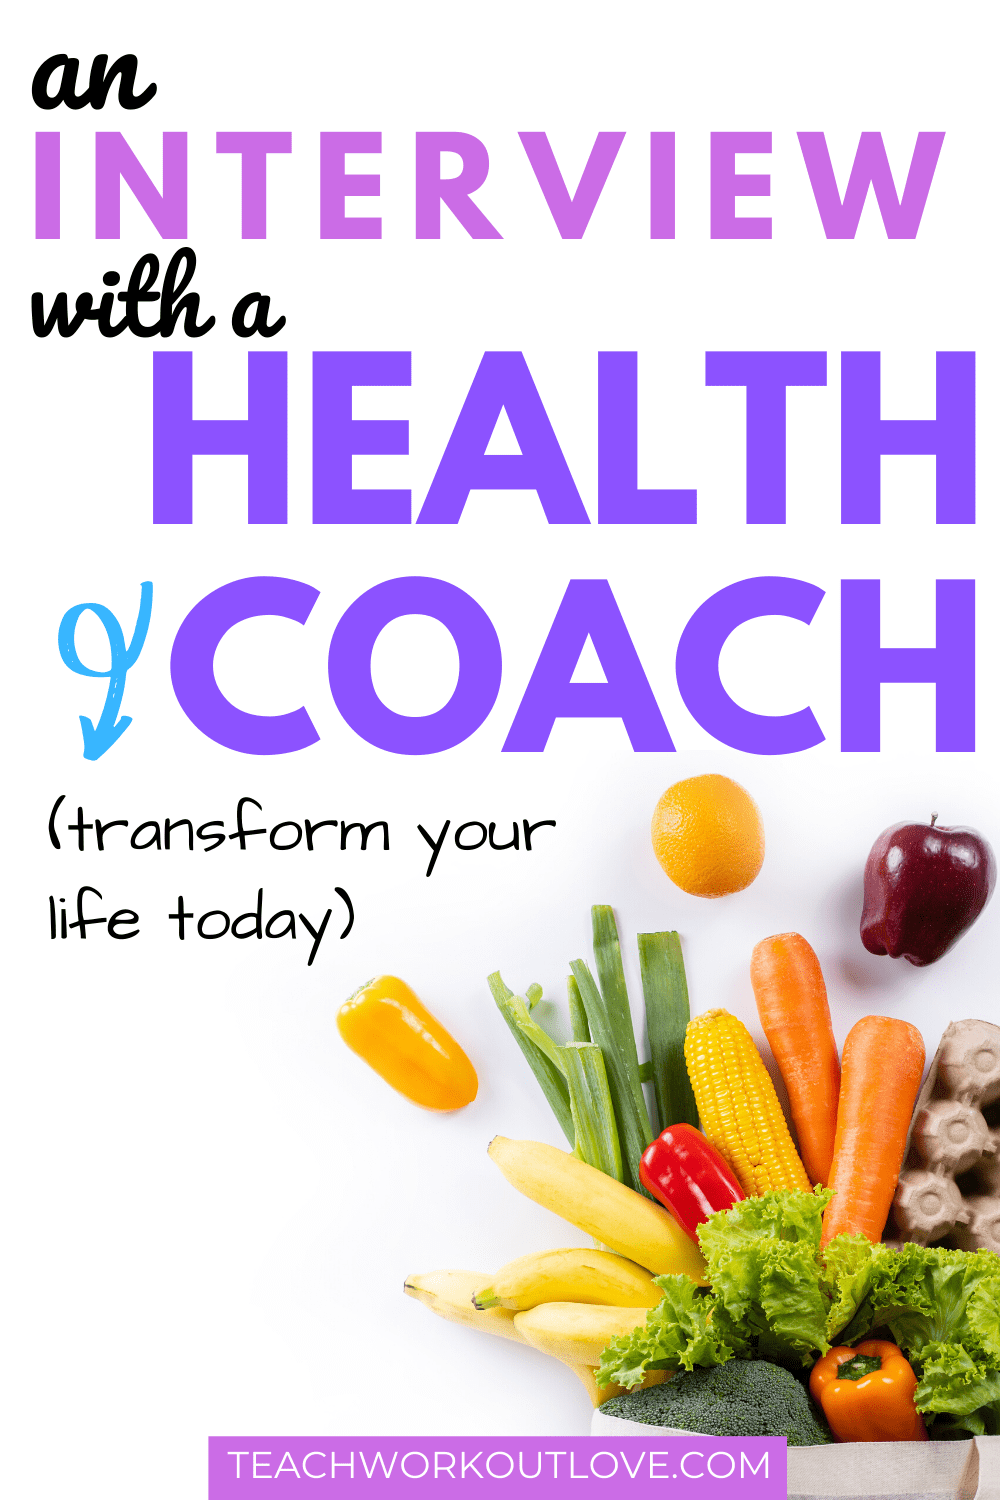 With the New Year coming up quickly, I researched more information about fitness, health and life changes. View the interview with a health coach for tips!